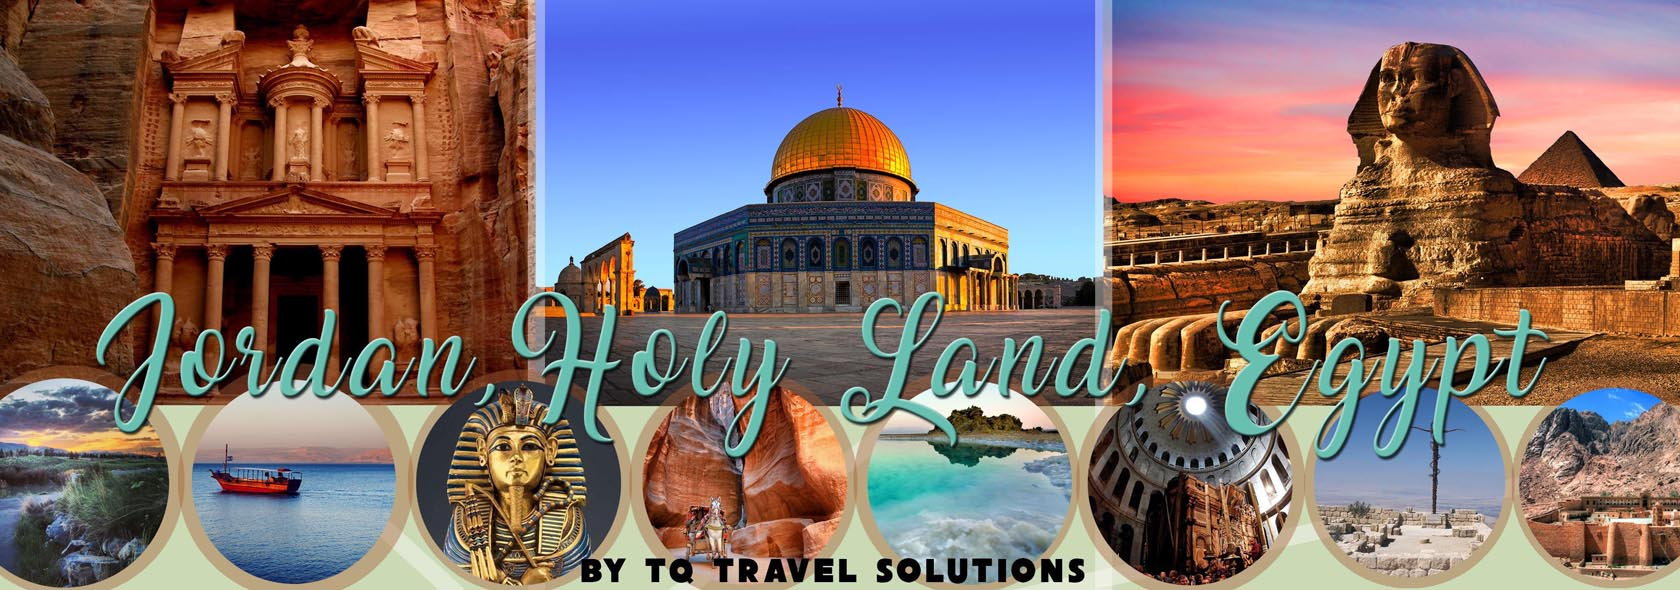 Tq Travel Solutions Affordable Filipino Group Holy Land